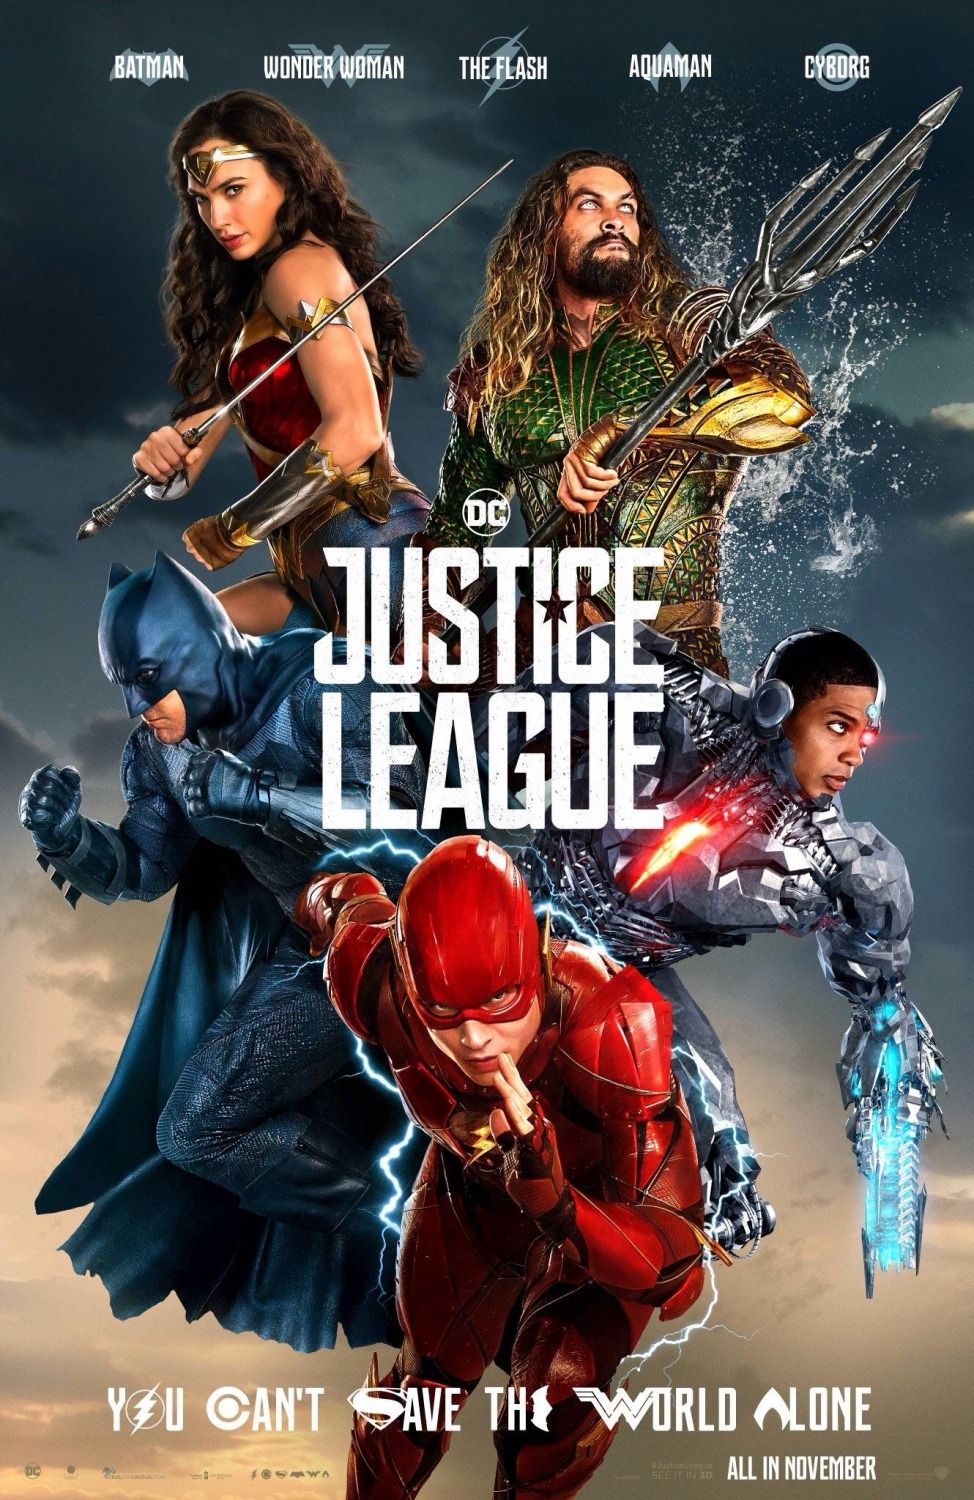 justice league 2017 new hd-ts x264 hq-cpg opensubtitles